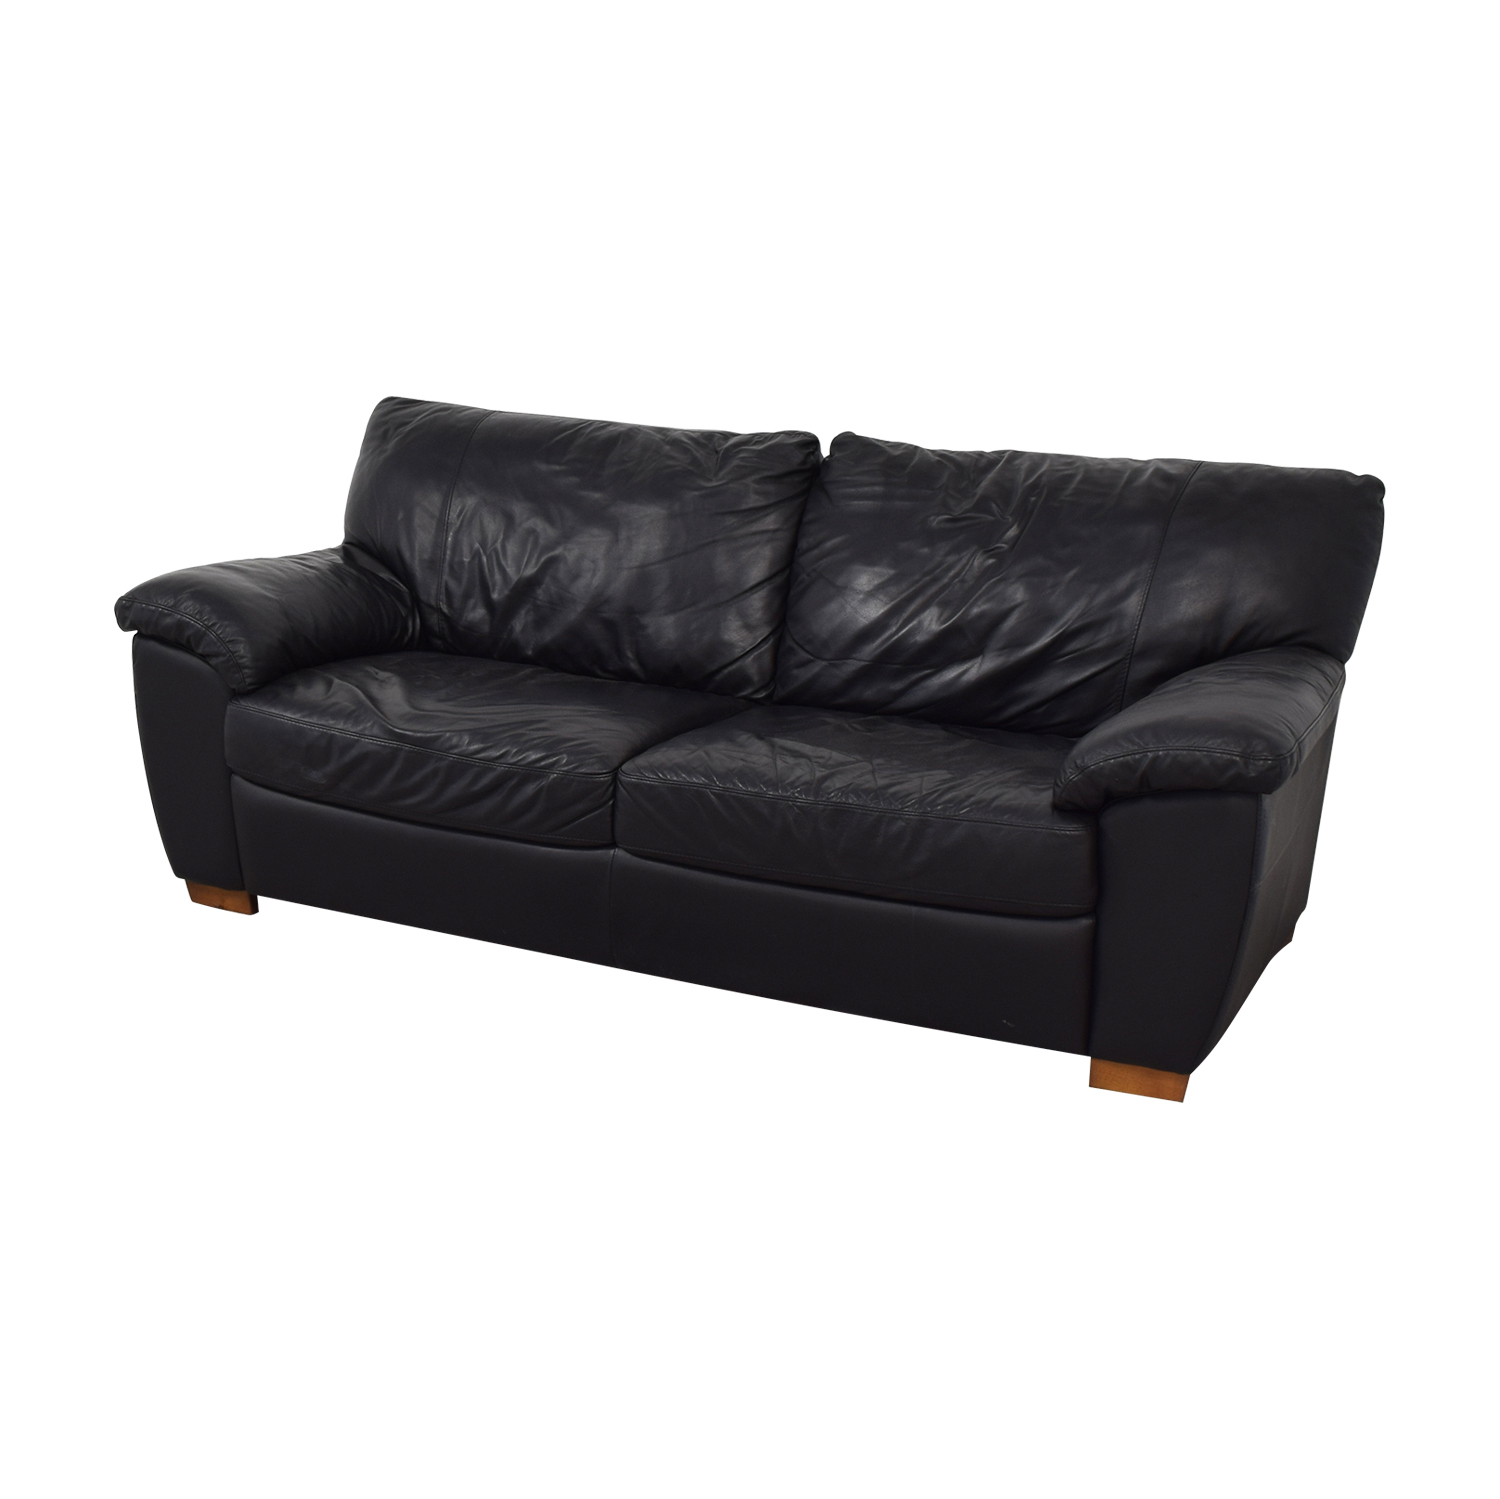 58 off ikea ikea vreta black leather two cushion sofa sofas. Black Bedroom Furniture Sets. Home Design Ideas